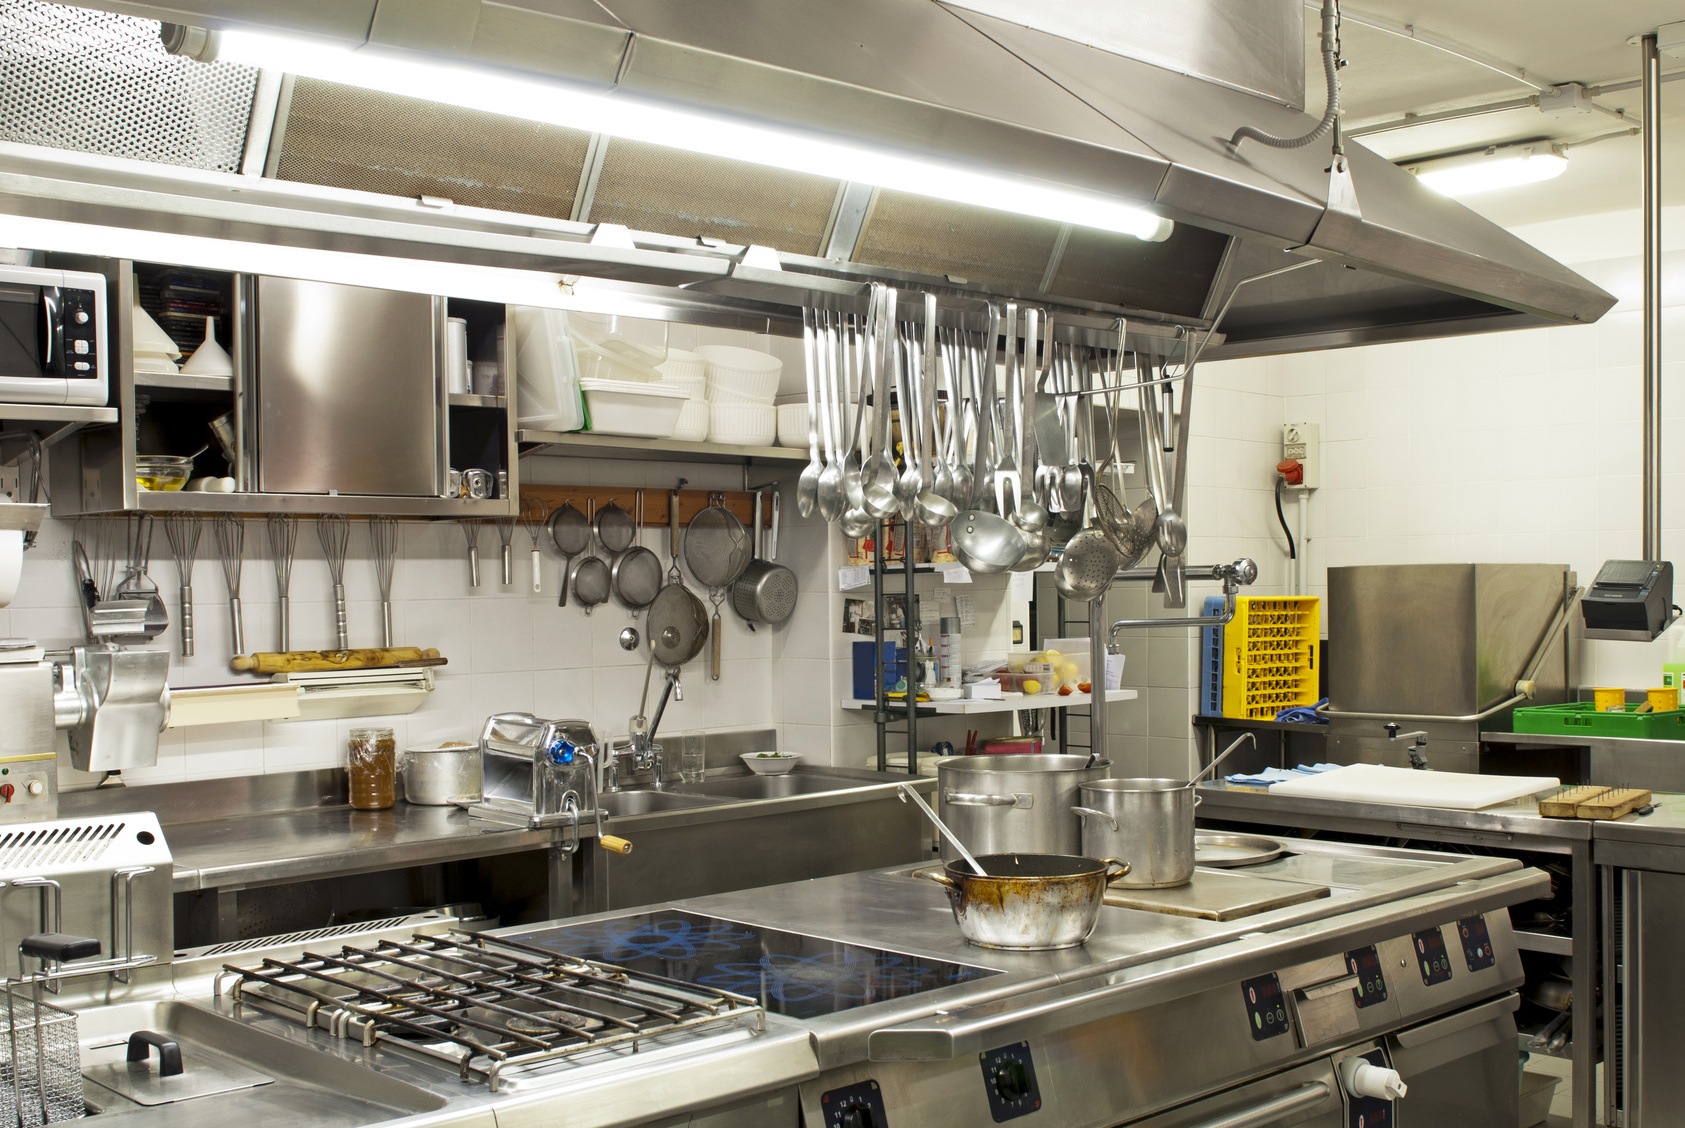 Extraction de cuisines paris ventilation for Cuisine professionnelle